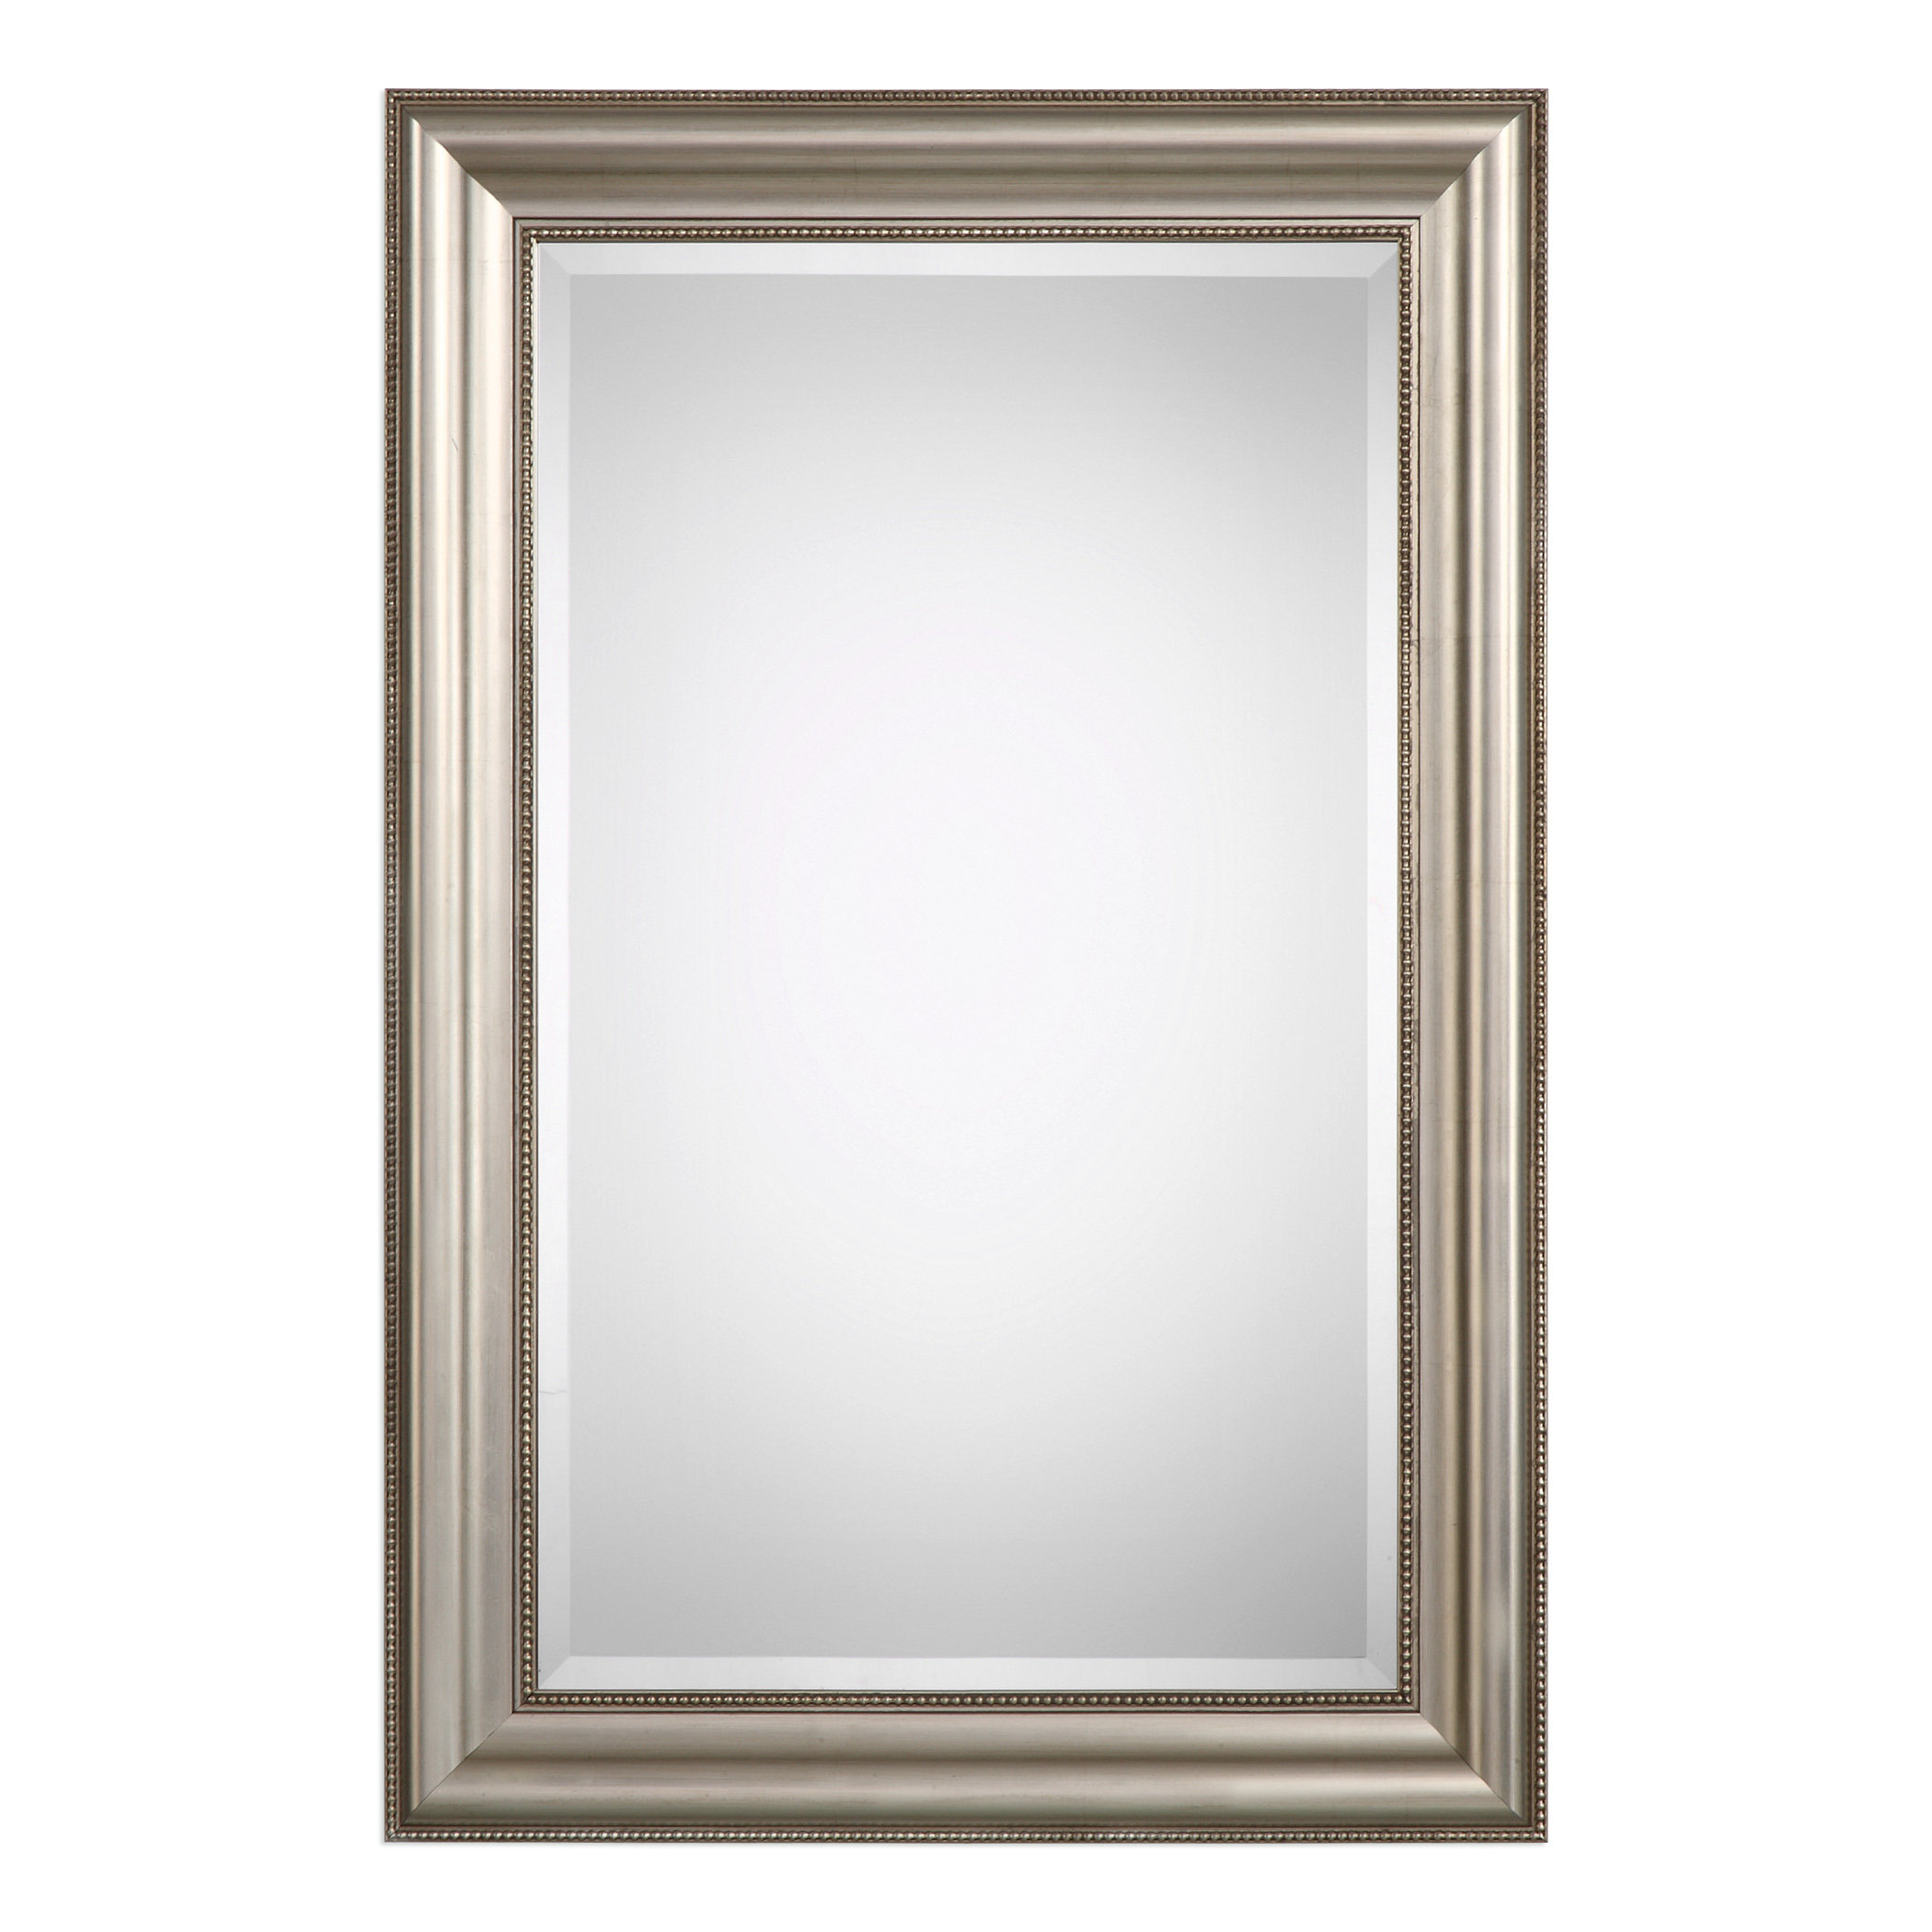 Farmhouse Mirrors | Birch Lane With Traditional/coastal Accent Mirrors (View 7 of 20)